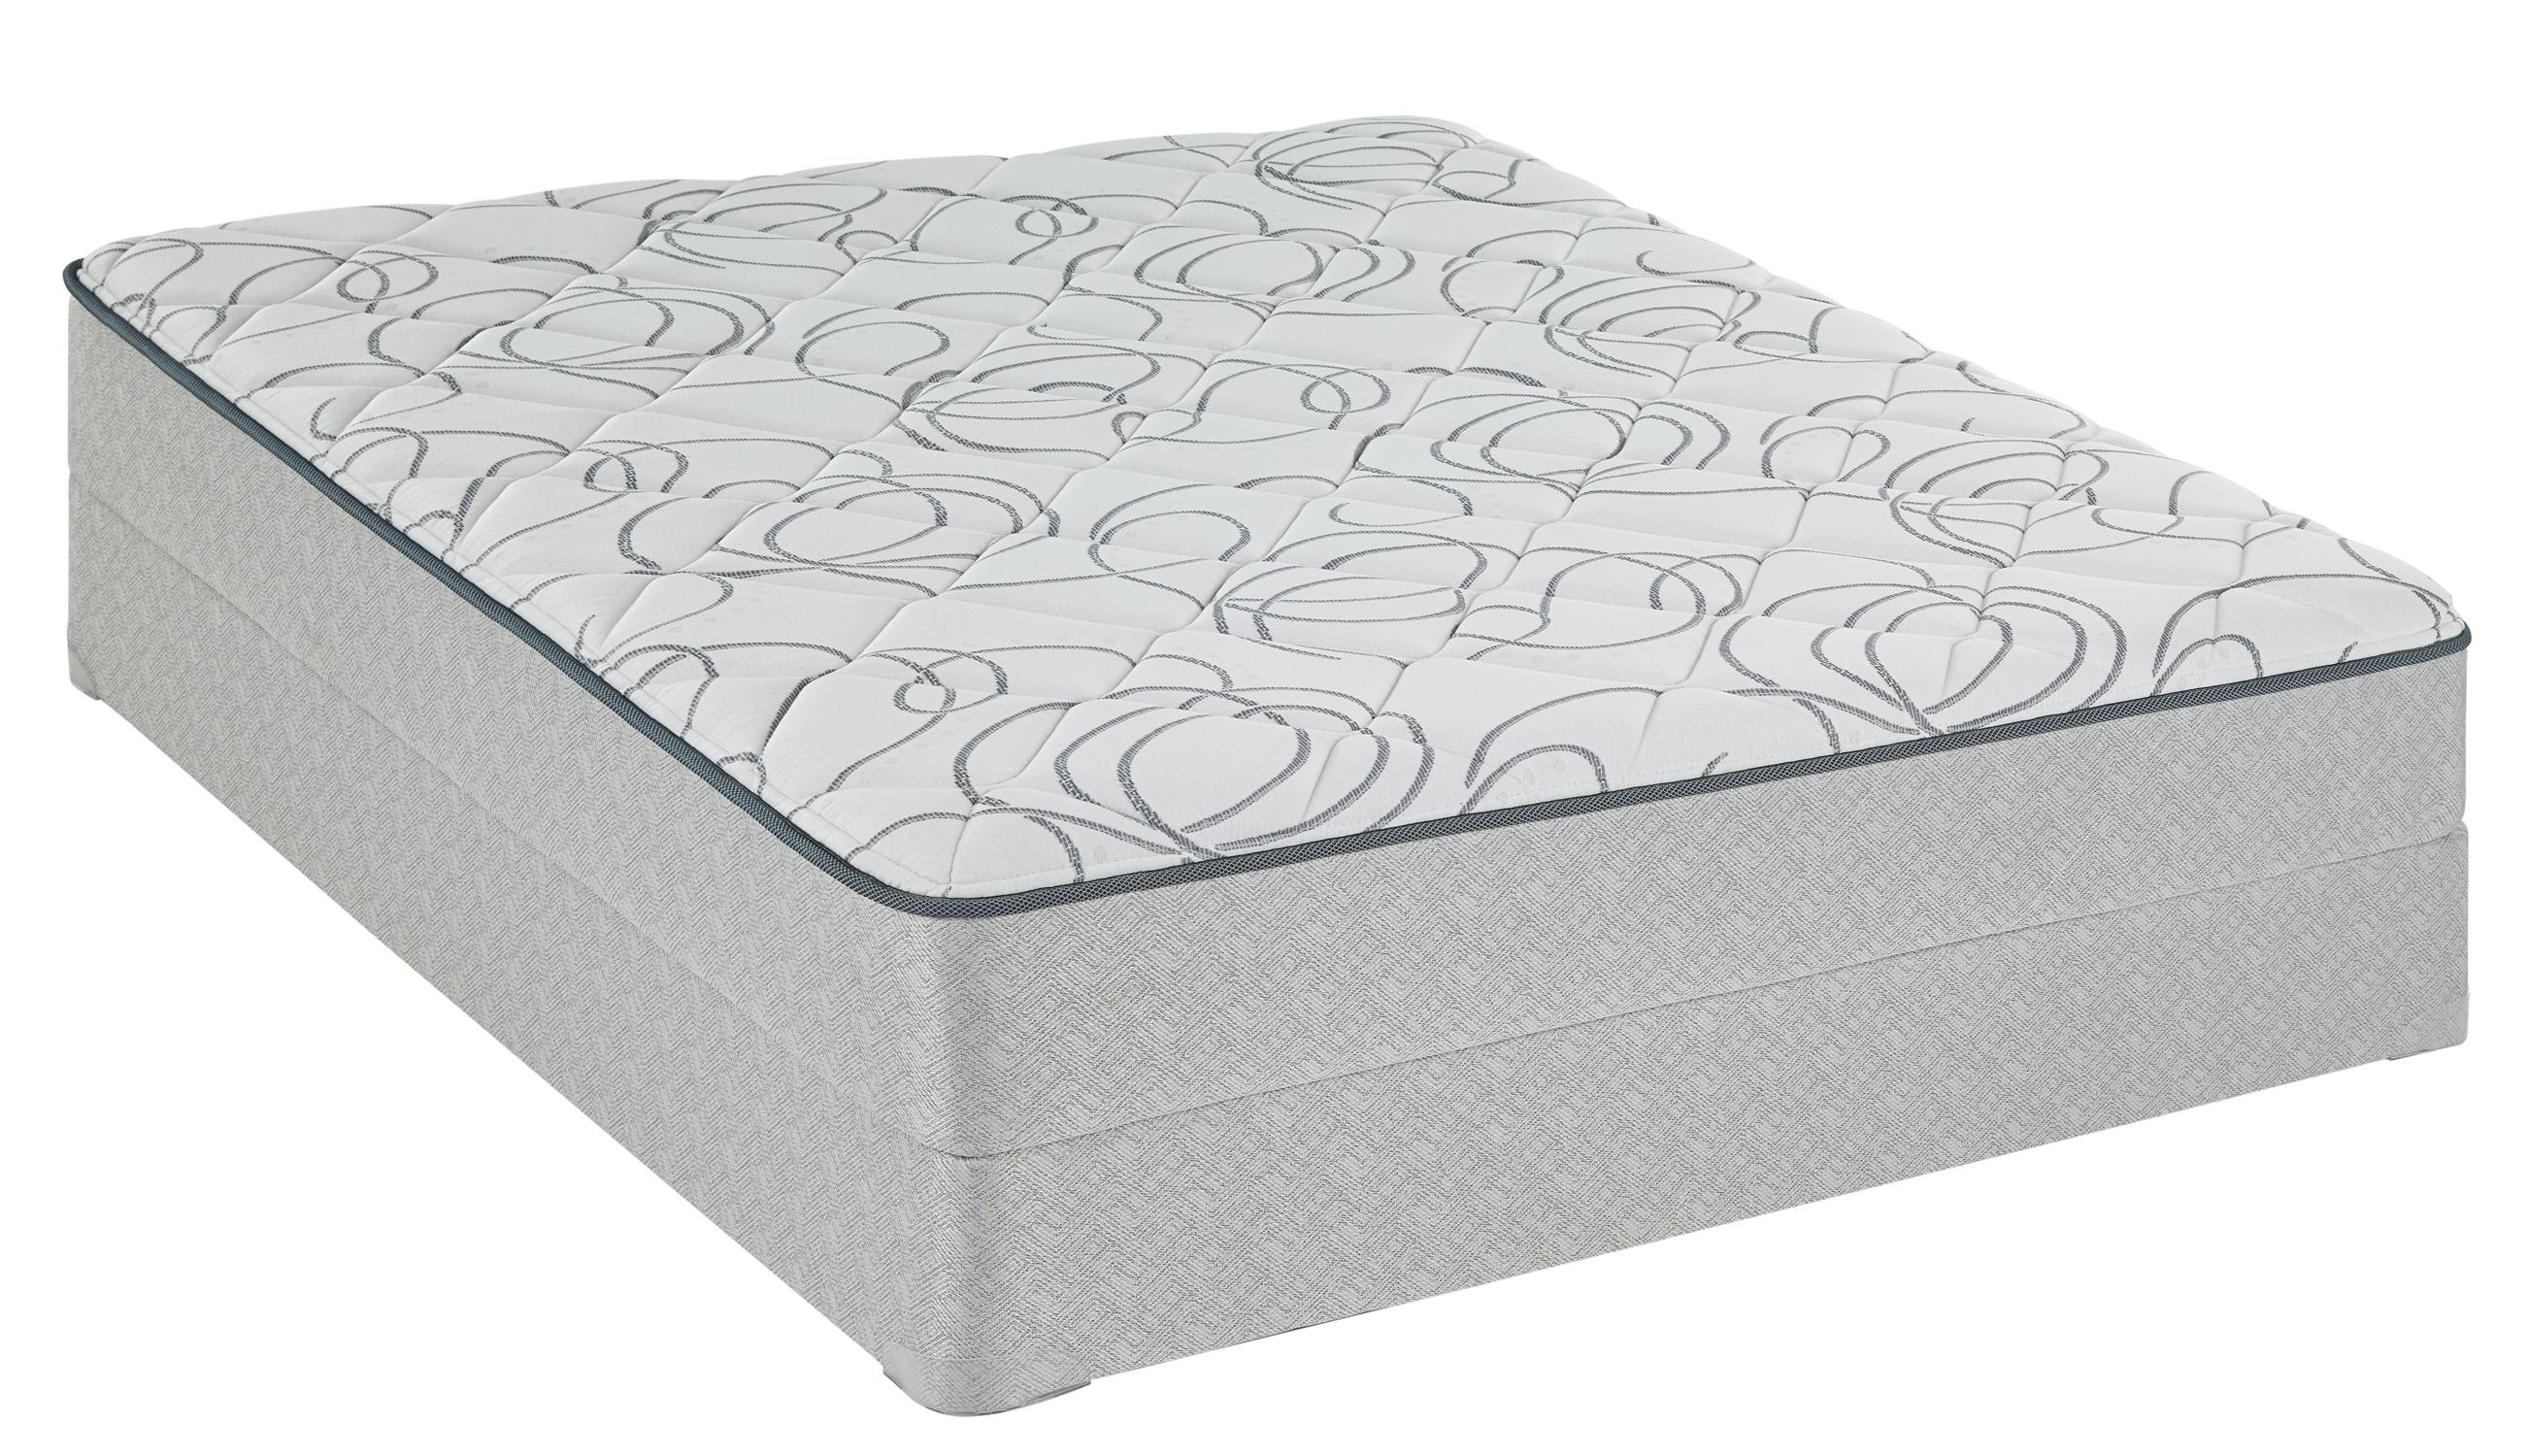 Sealy Sealy Watsonia Queen Firm Mattress Set - Item Number: FirmTT-Q+FoundationQ